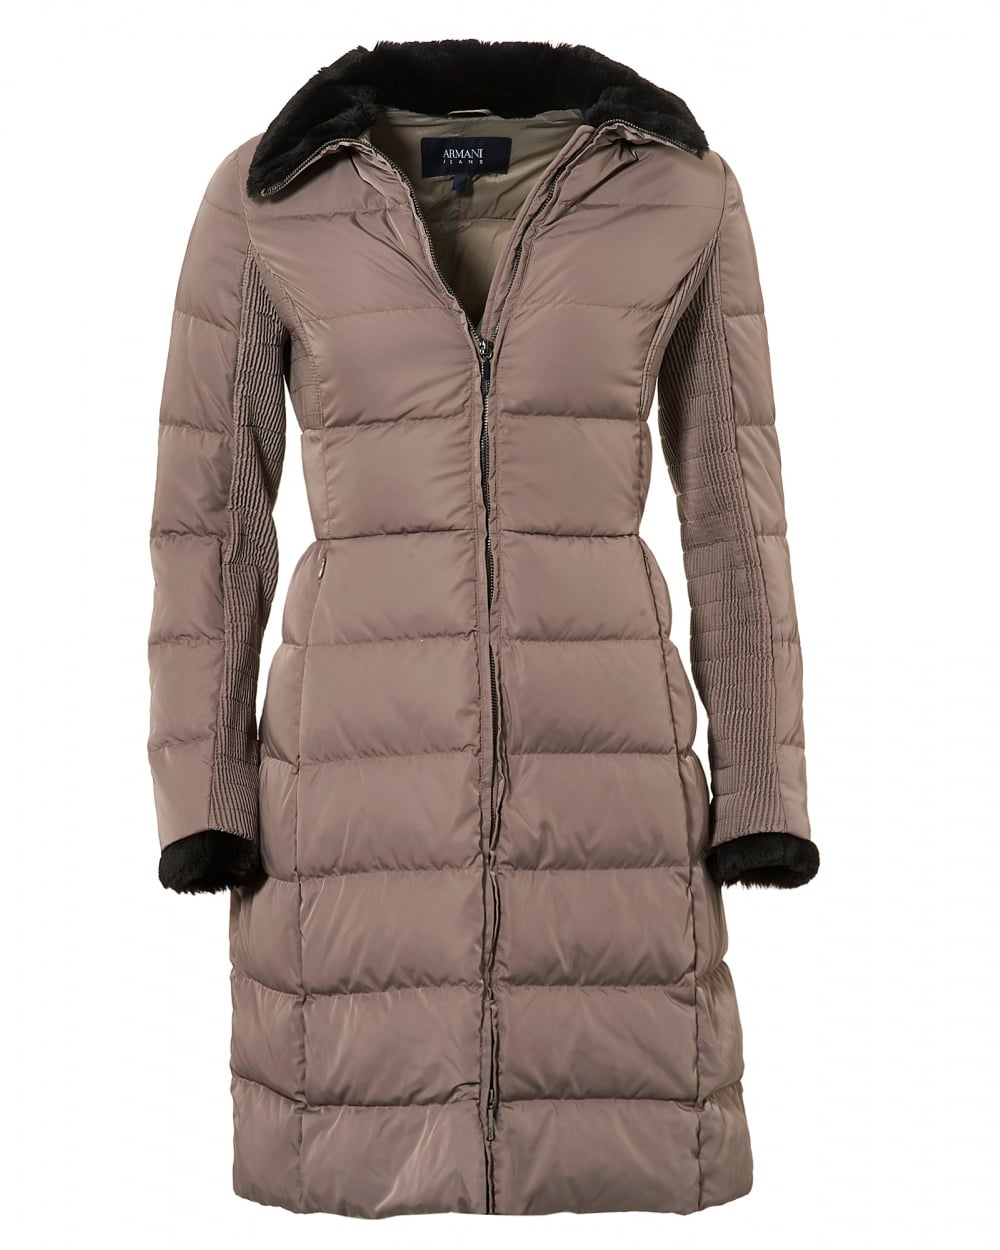 Armani Jeans Womens Long Length Jacket, Down Filled Taupe Puffa Coat